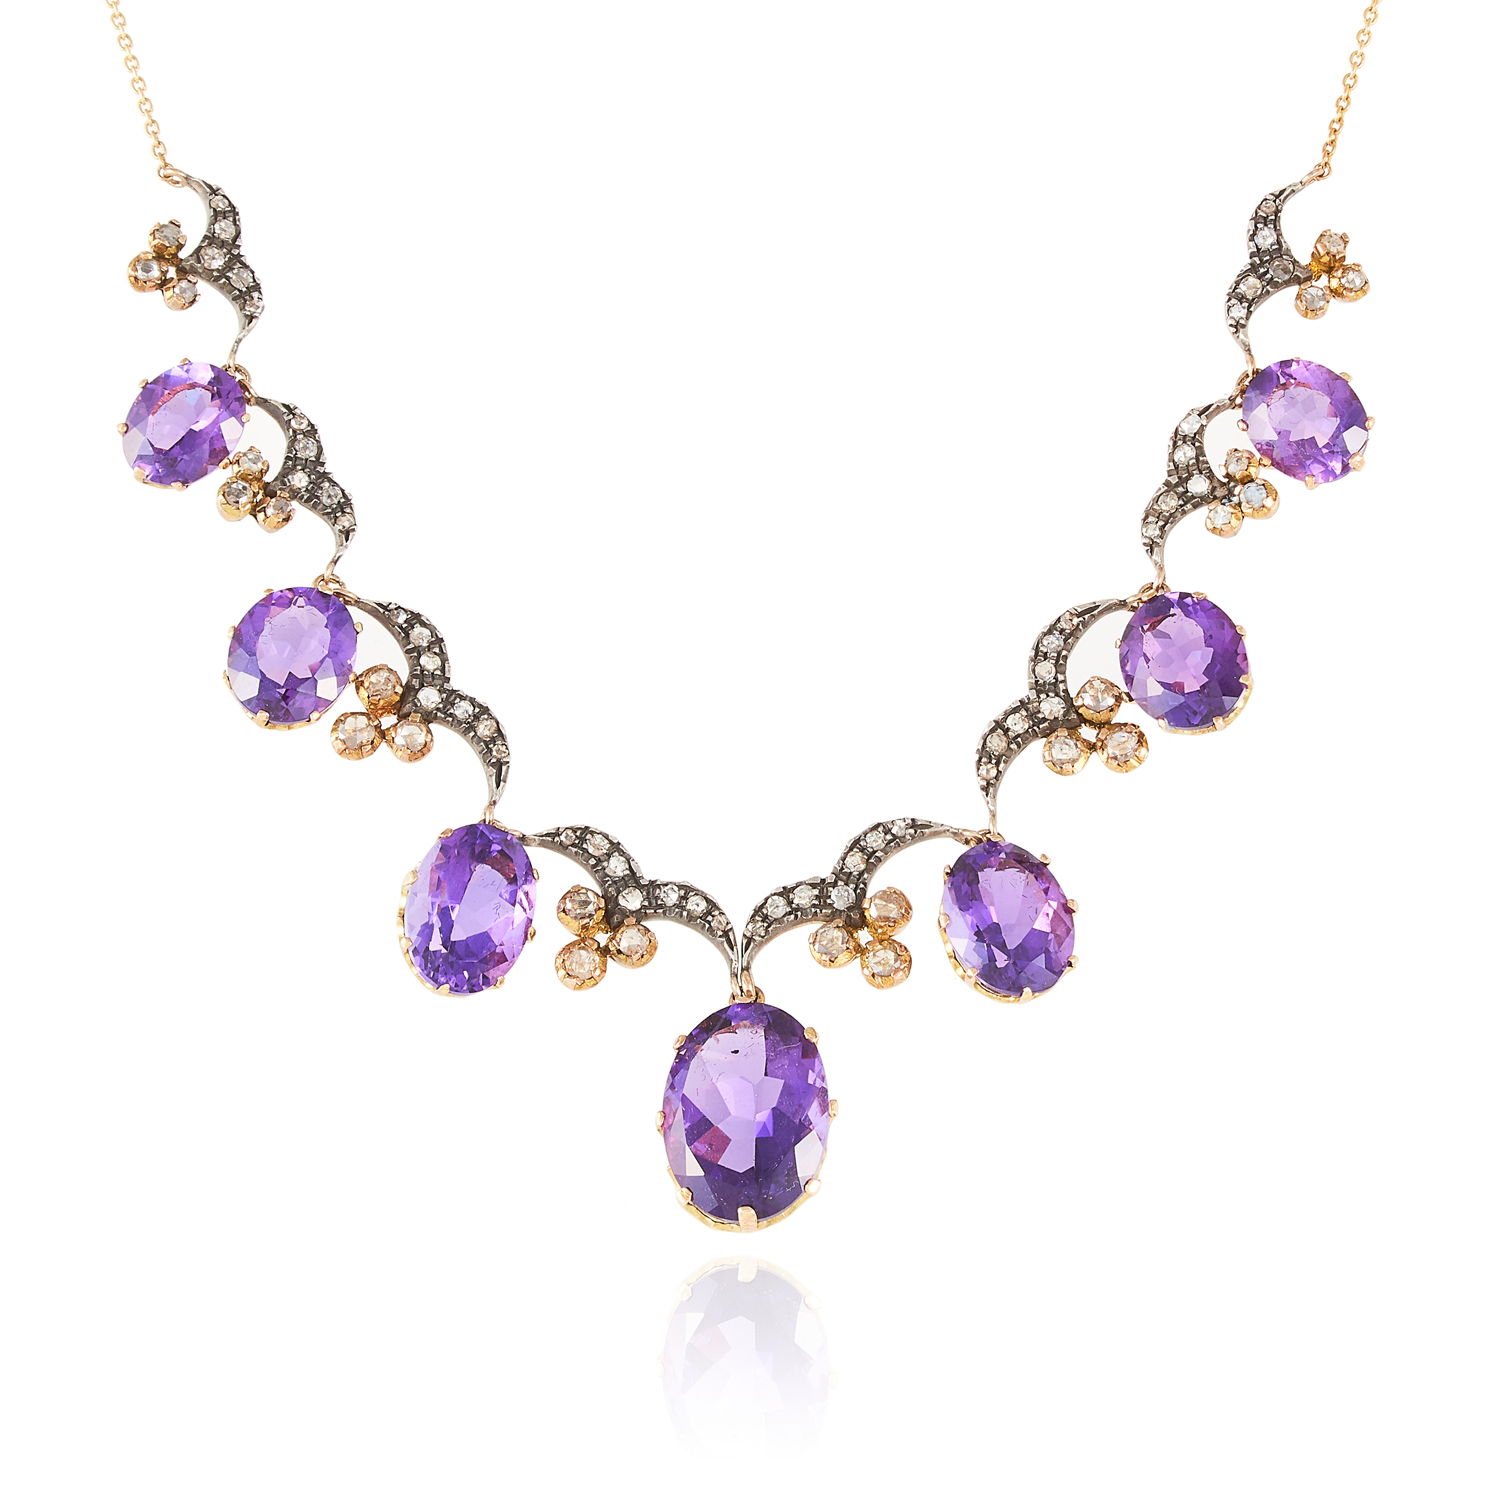 AN ANTIQUE AMETHYST AND DIAMOND NECKLACE, 19TH CENTURY in high carat yellow gold and silver,